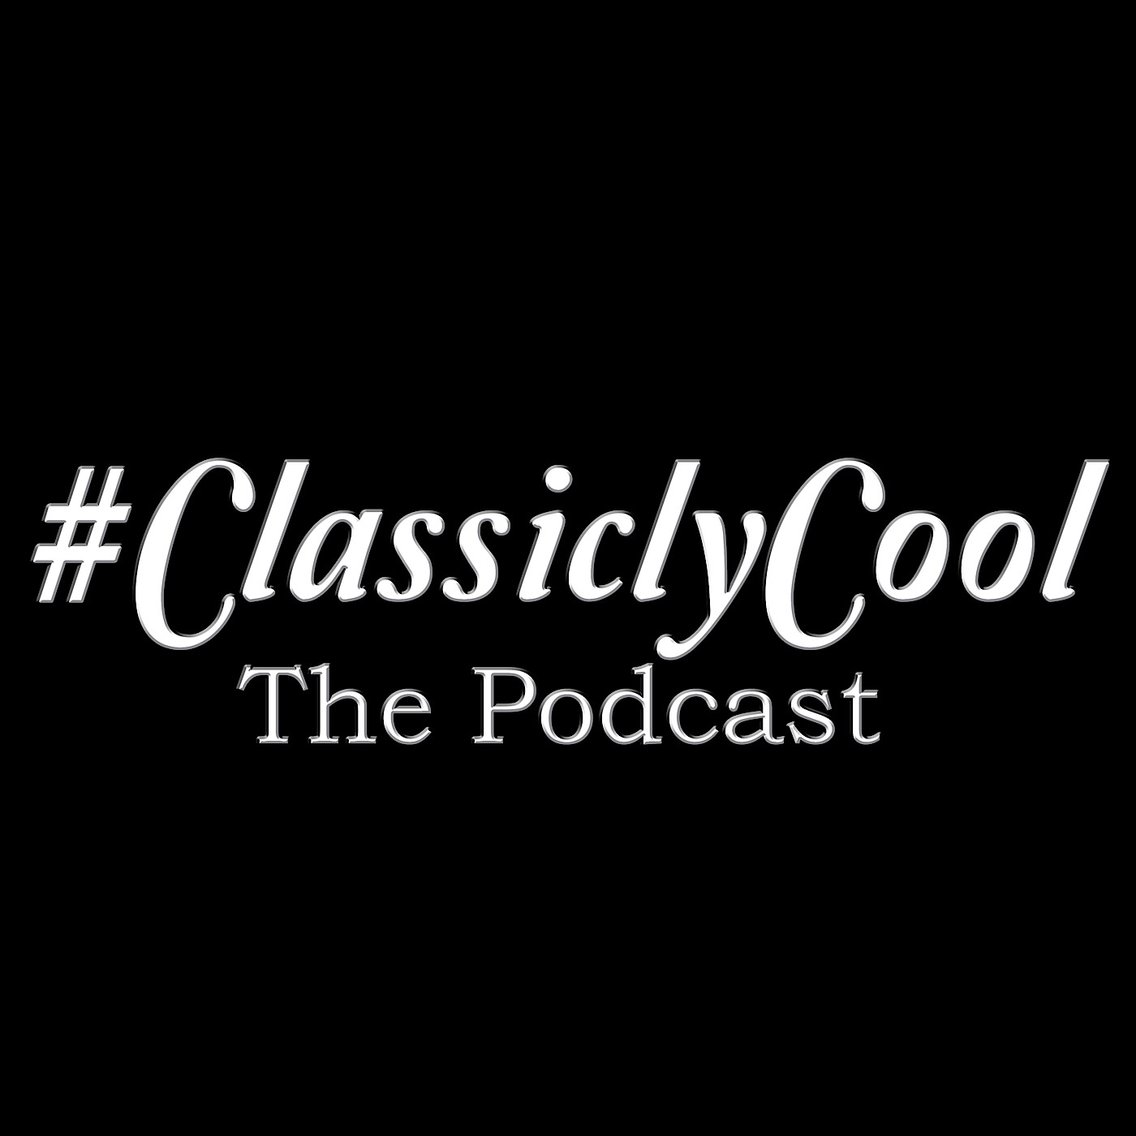 #ClassiclyCool - Cover Image